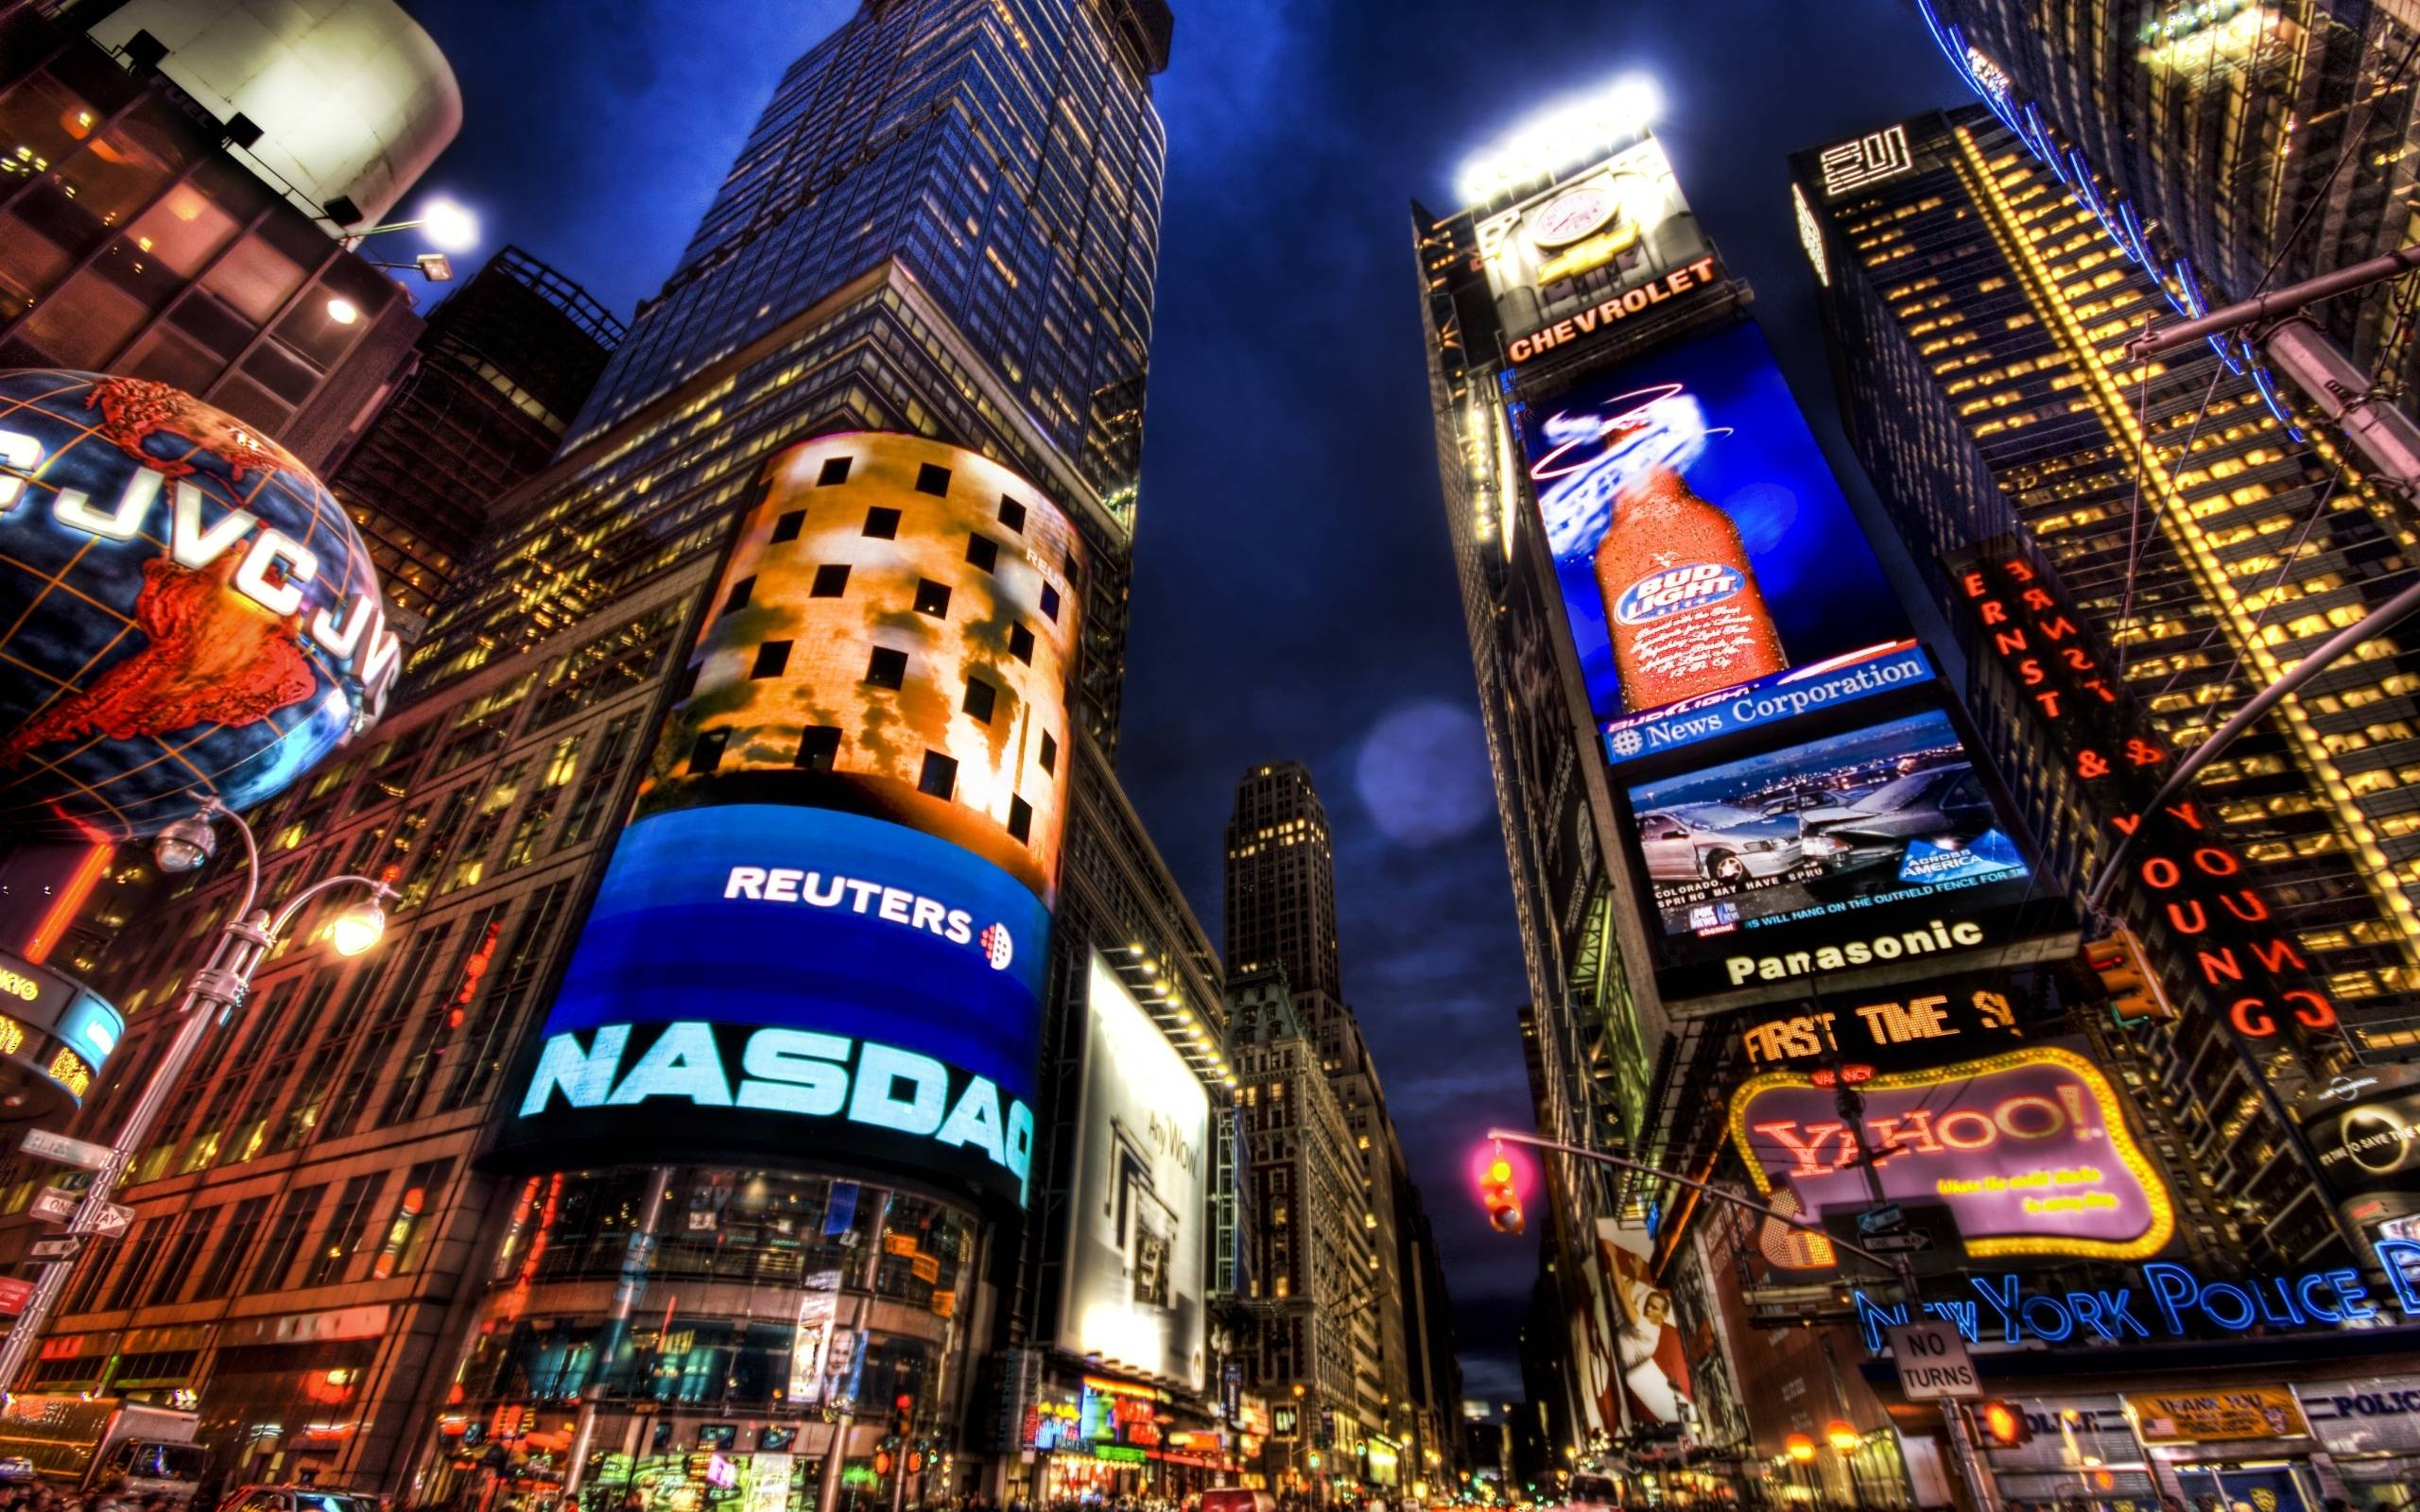 Time Square Wallpapers - Full HD wallpaper search